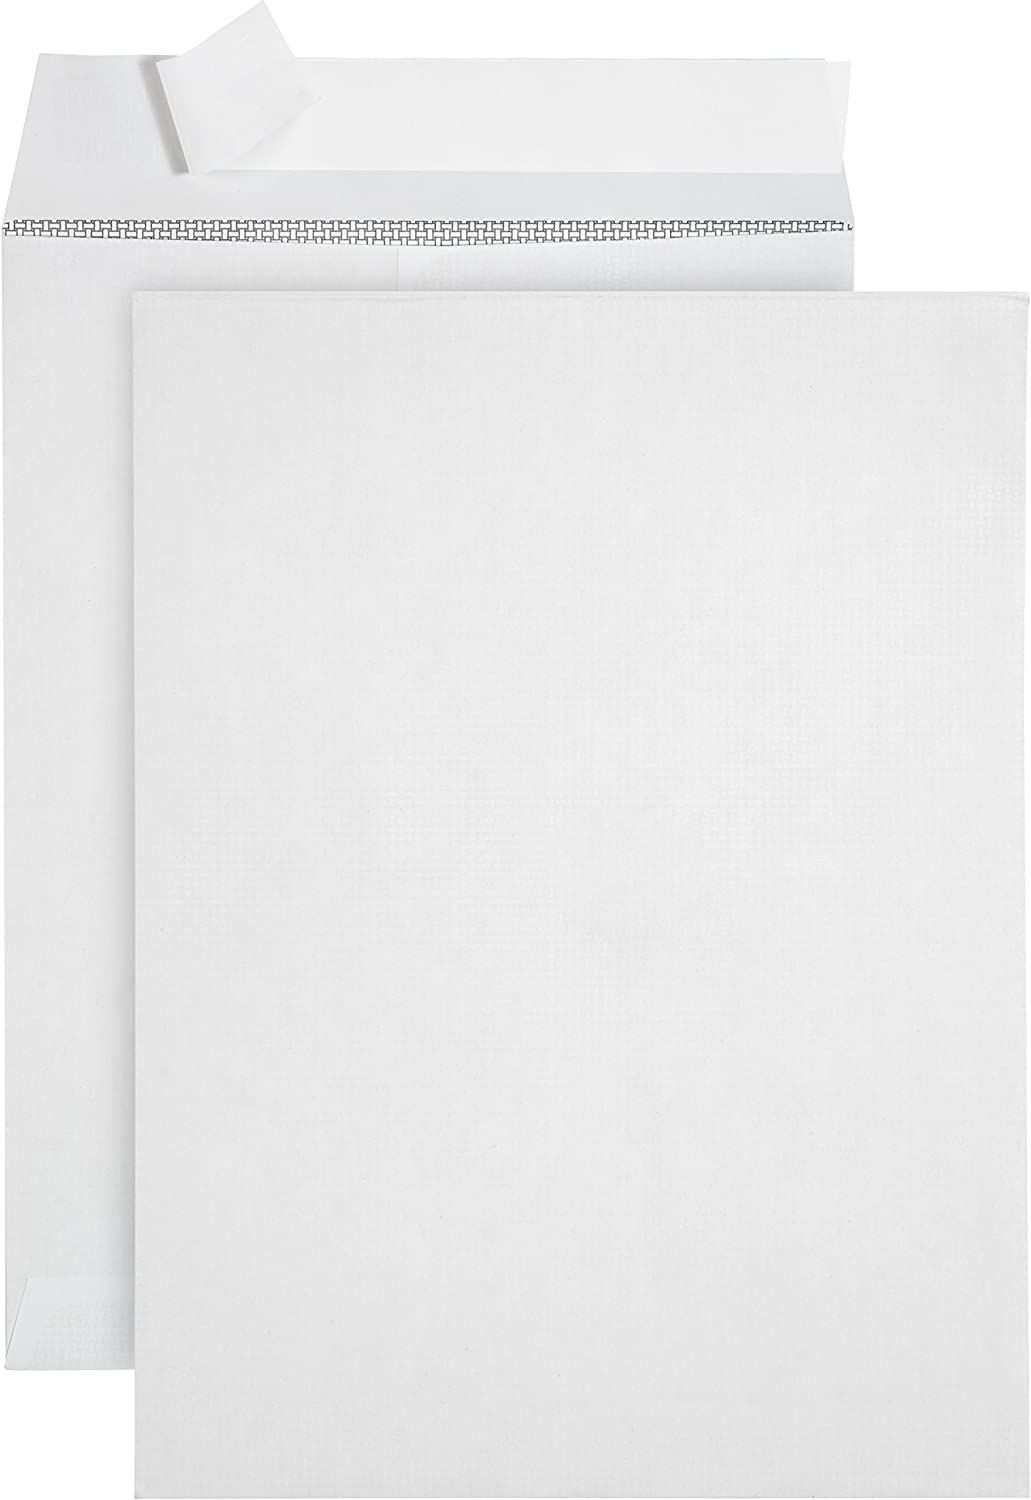 100 9 X 12 Self Seal Al sold out. Security Catalog - Envelopes Sale special price S Designed for